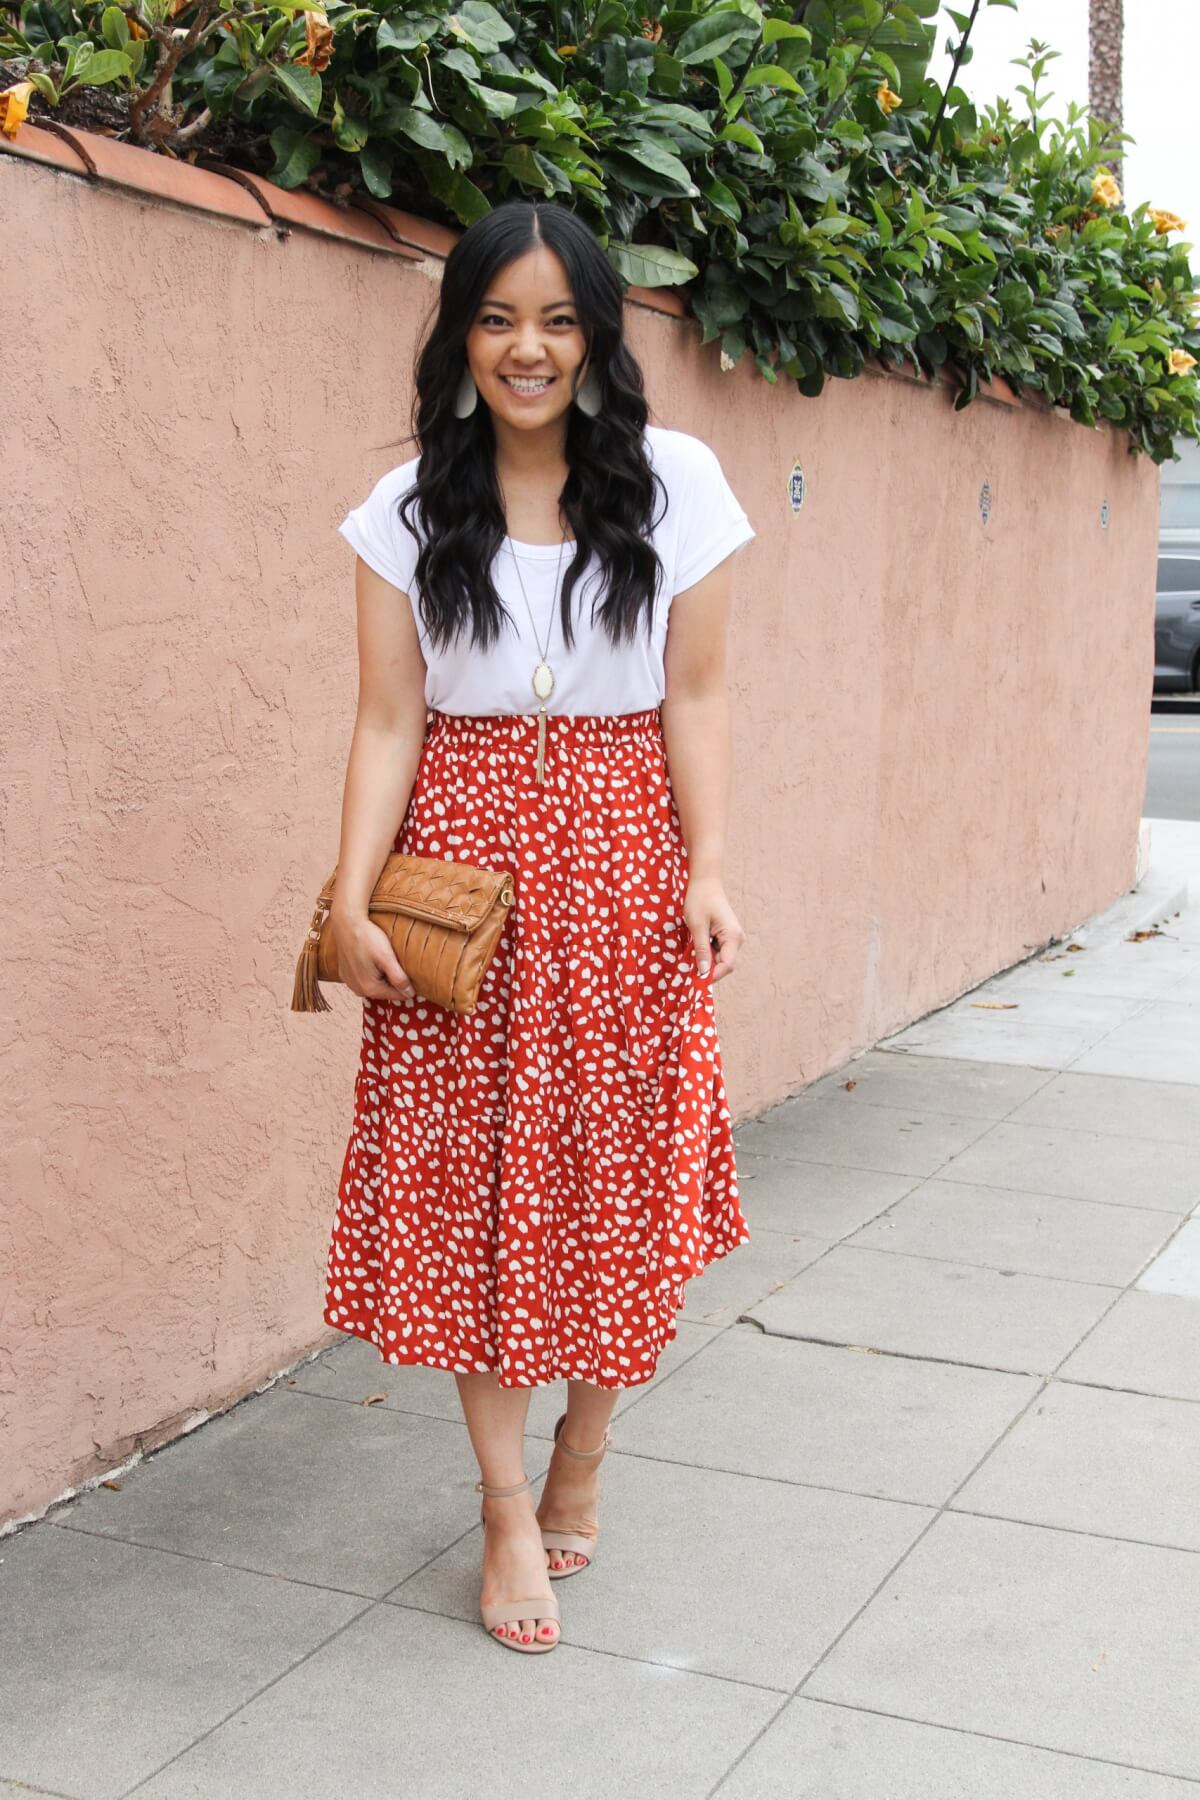 Summer Shoes Dressy Casual Outfit: white tee + red and white midi skirt + nude open toe heels + white earrings + pendant necklace + tan clutch